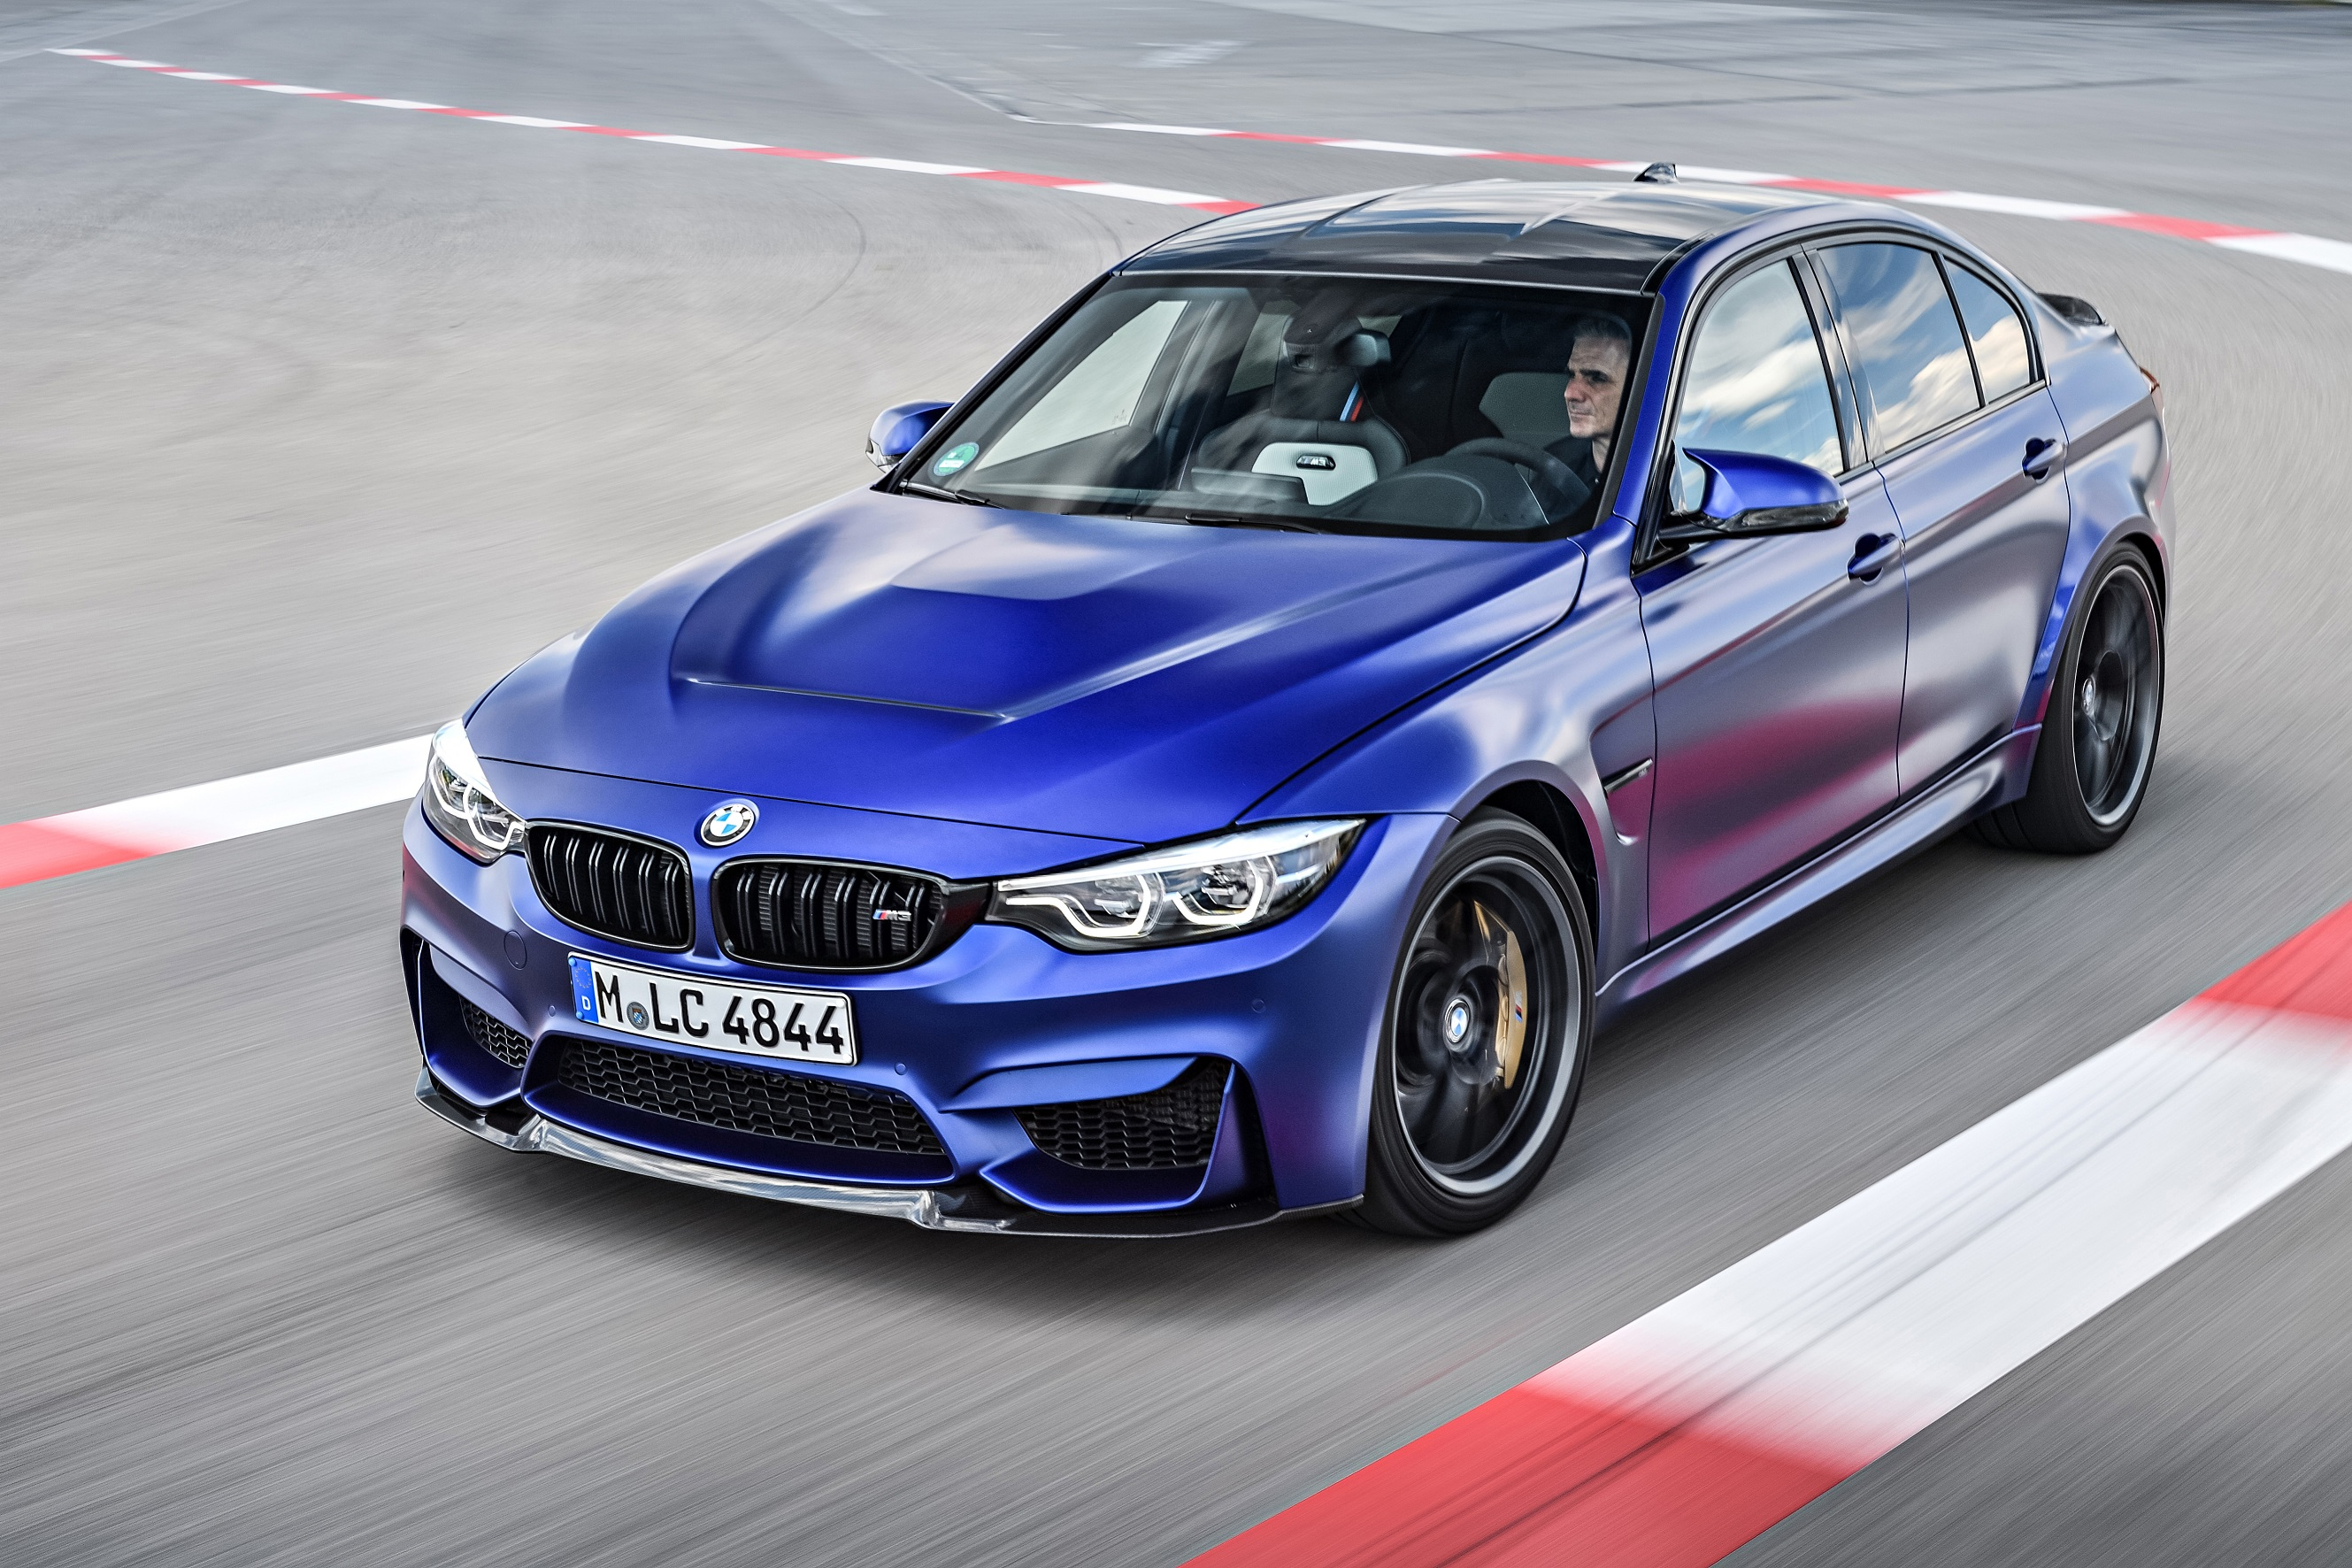 BMW M Presents Limited-run Special-edition BMW M3 CS